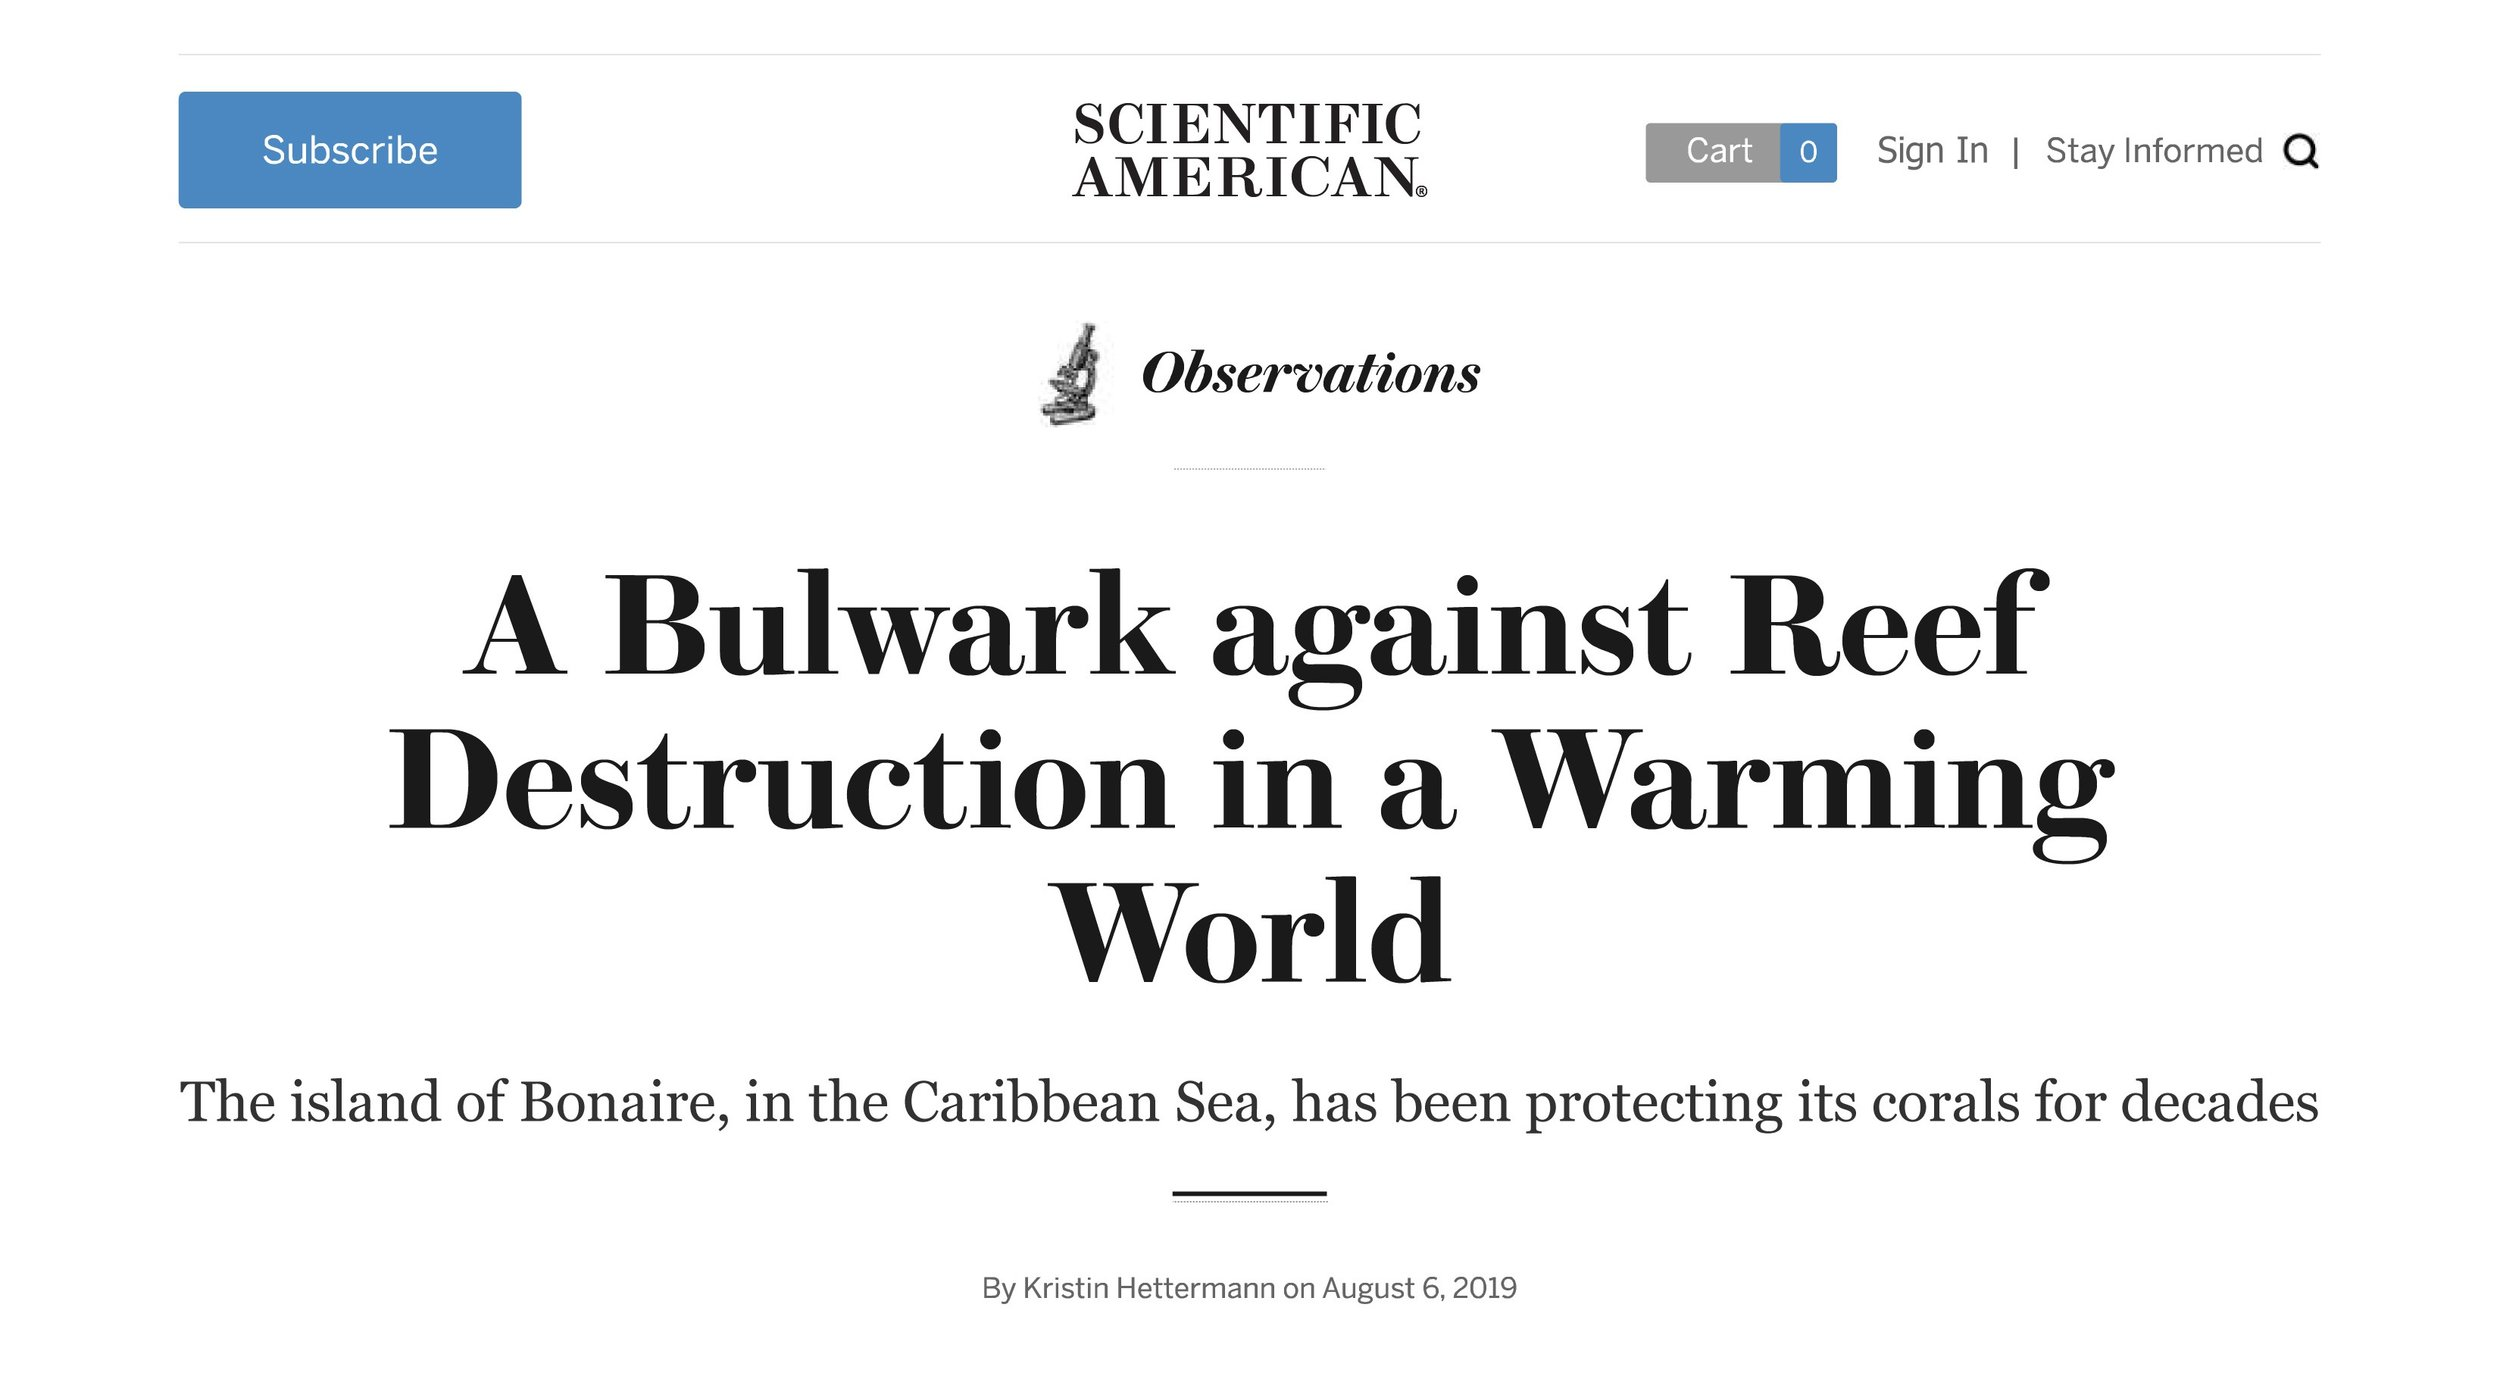 A Bulwark against Reef Destruction in a Warming World - Scientific American-1.jpg